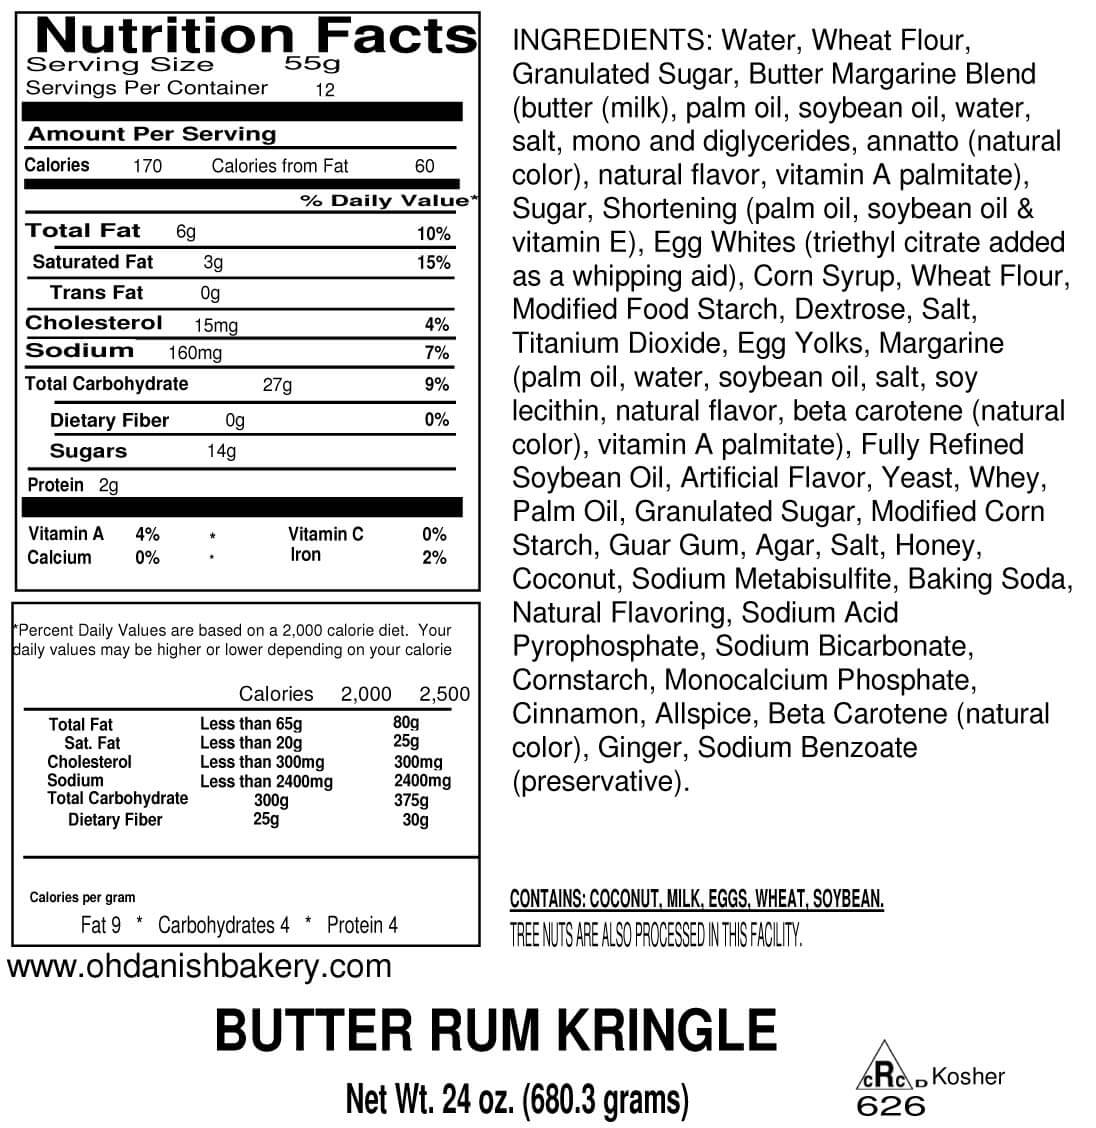 Nutritional Label for Butter Rum Kringle